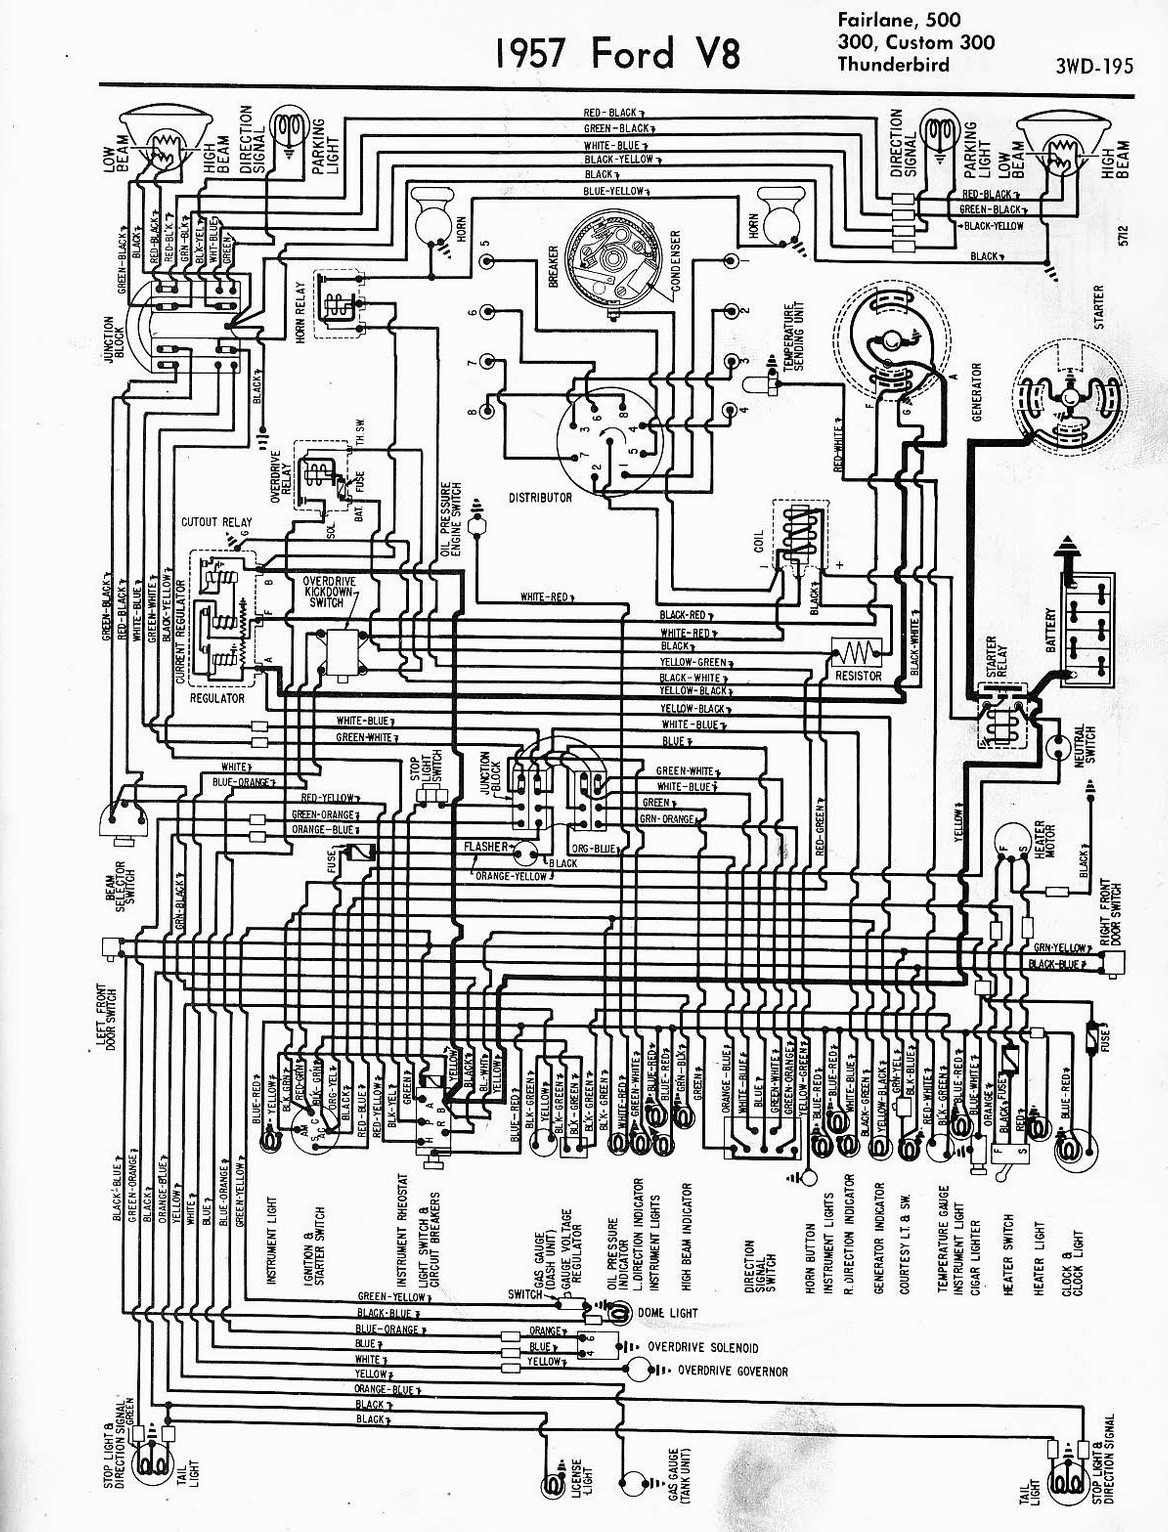 small resolution of 1957 ford wiring schematic wiring diagram g11 1957 thunderbird wiring diagram 57 ford wiring harness wiring